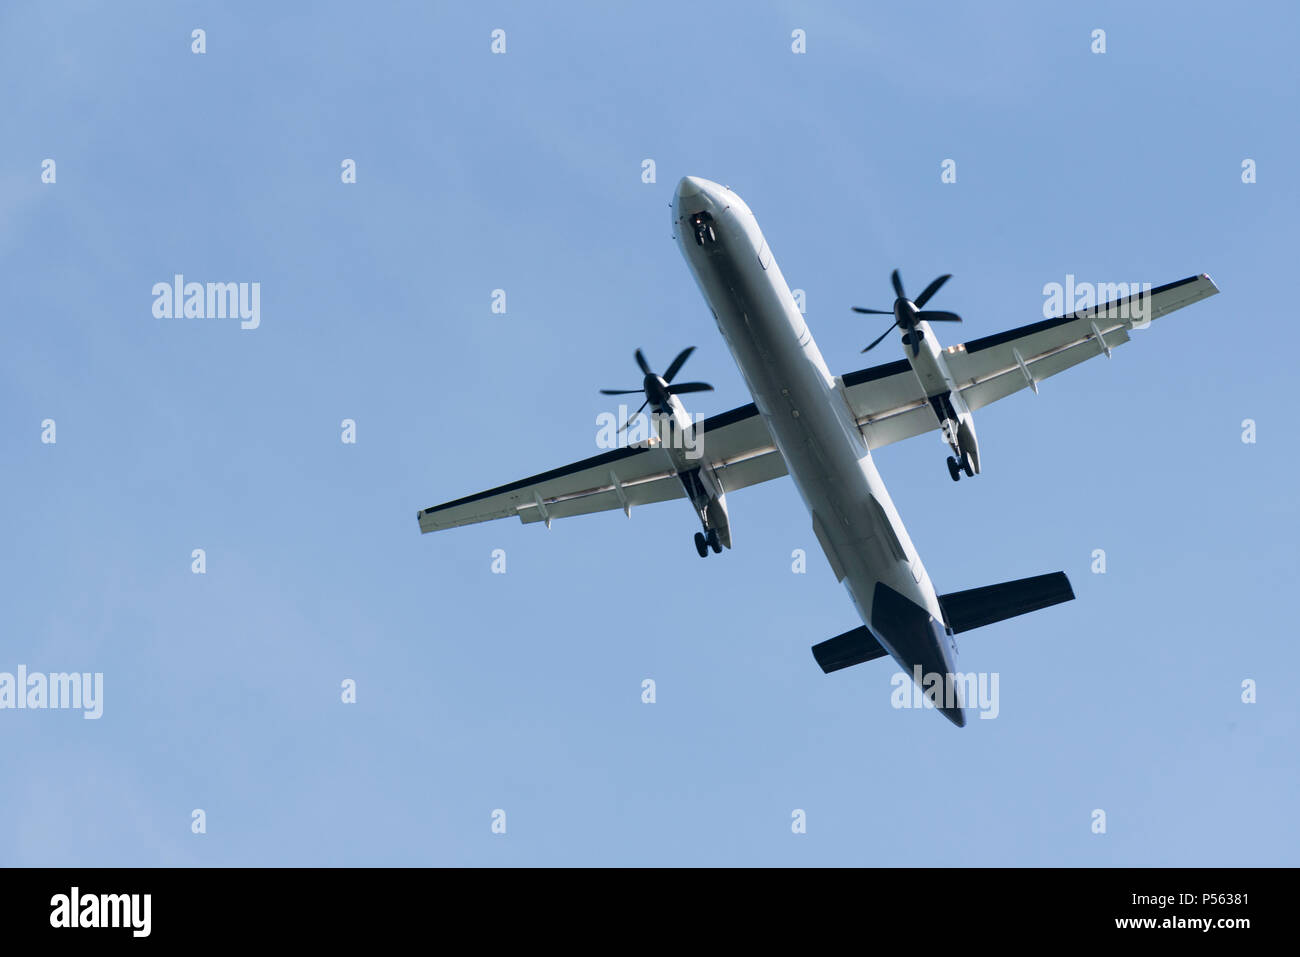 A Twin engined passenger aircraft with undercarriage and flaps extended for landing - Stock Image